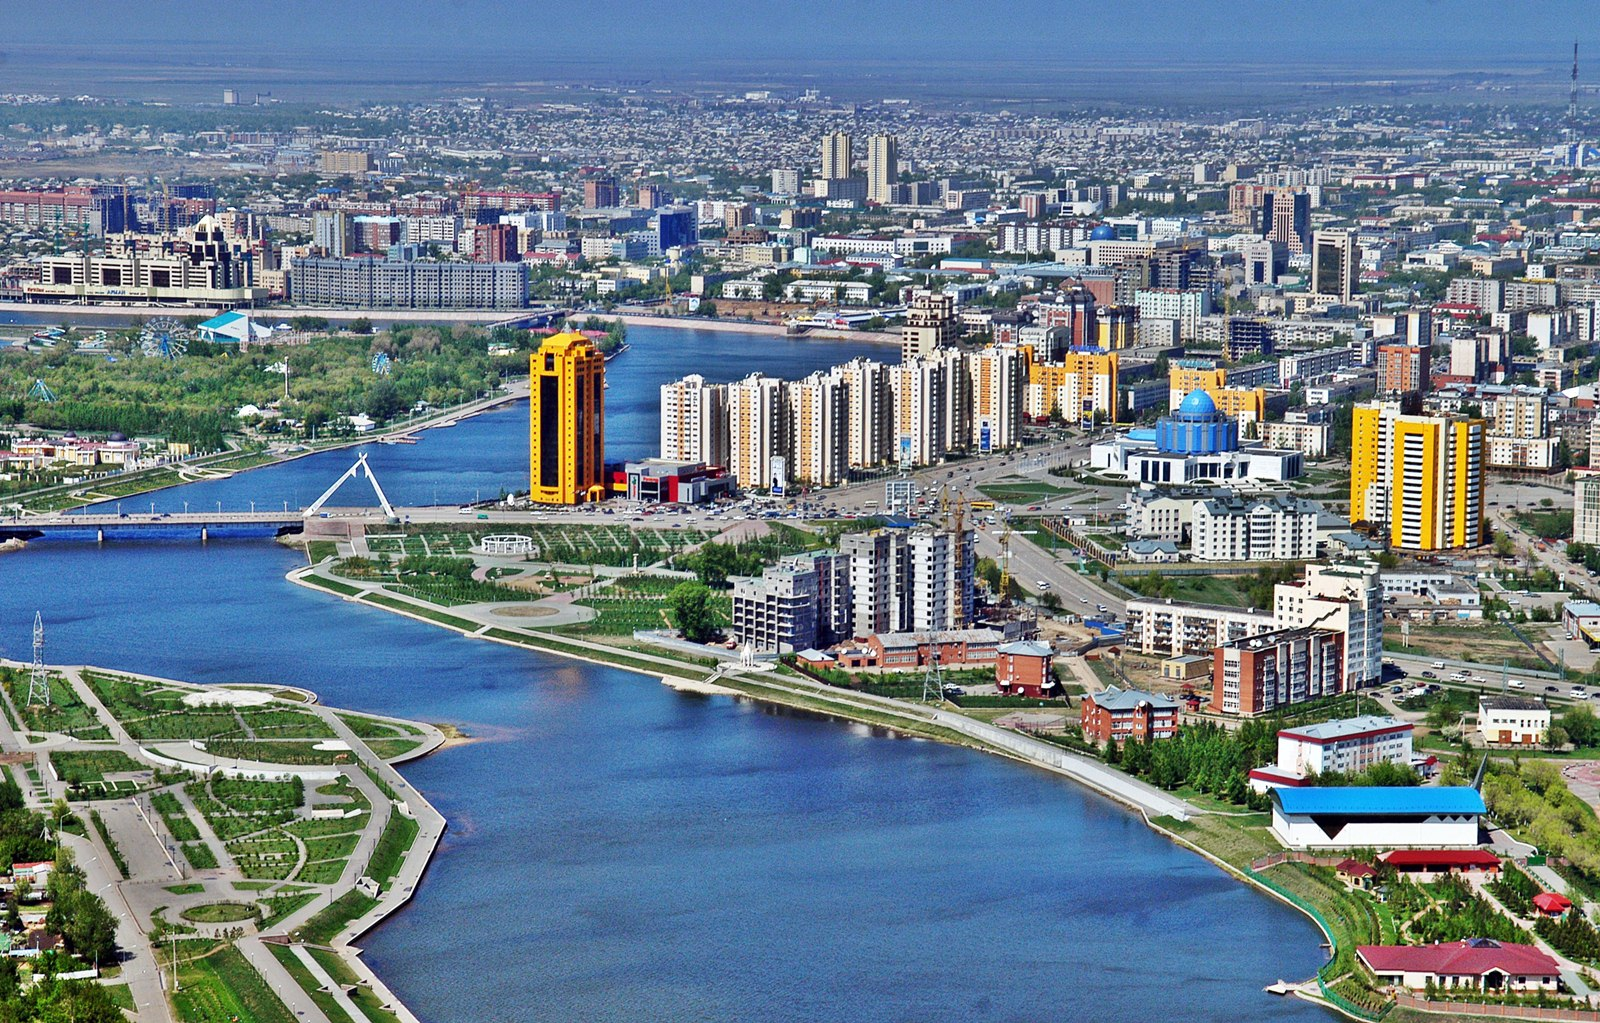 What Should We Expect from the Talks on Syria in Astana?